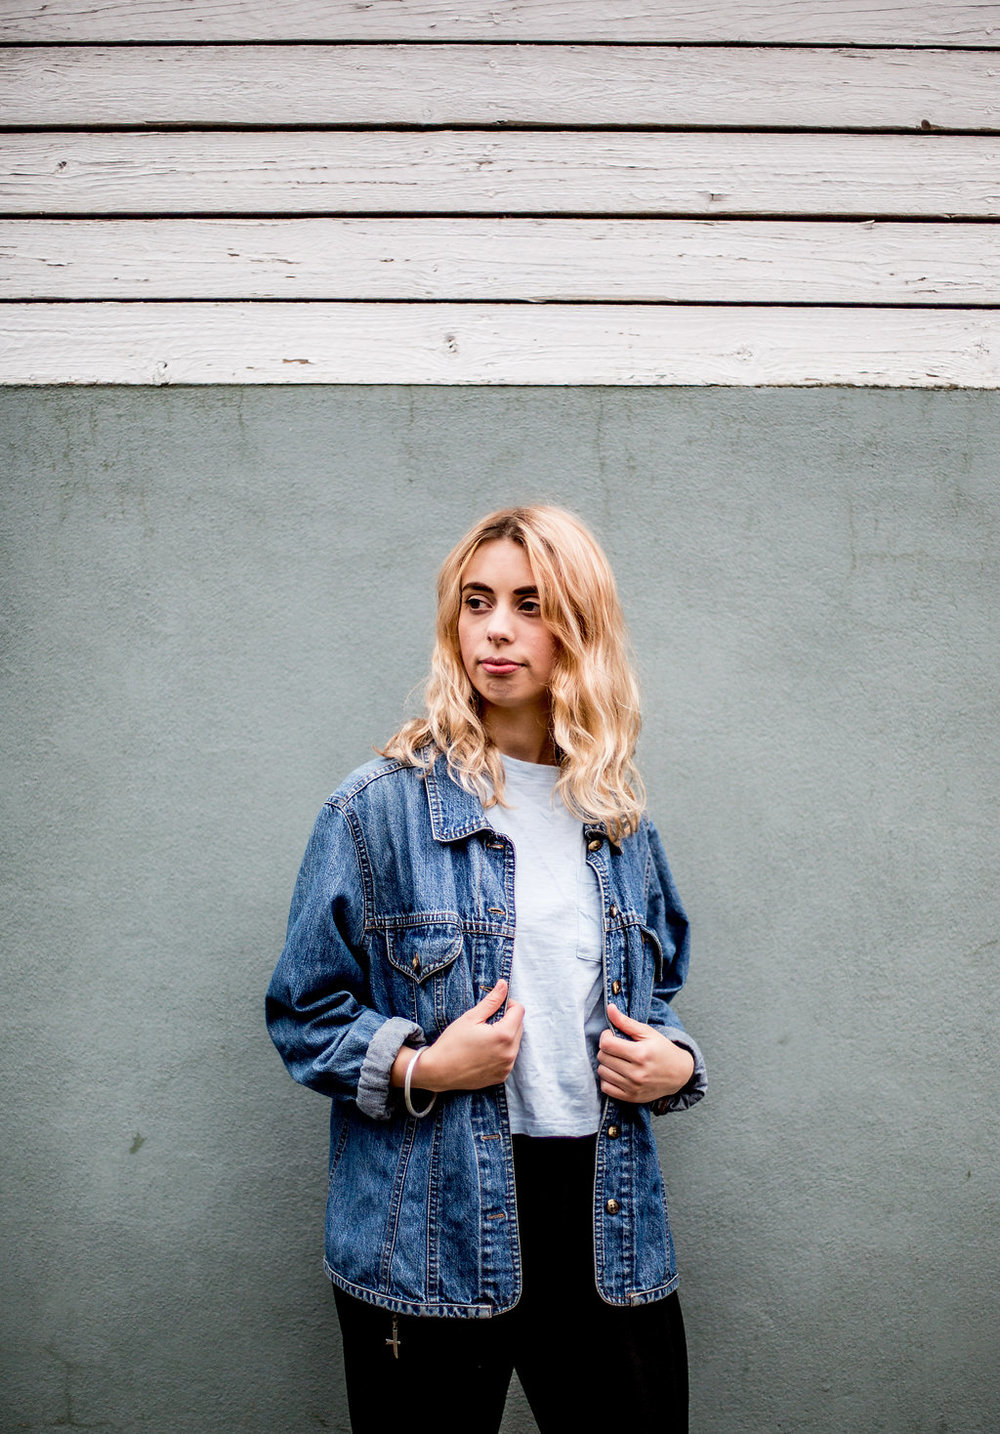 Casual denim jacket and crop top ethical fashion  // A Week Of Vibrant & Global Outfits With Francesca Willow From Ethical Unicorn on The Good Trade